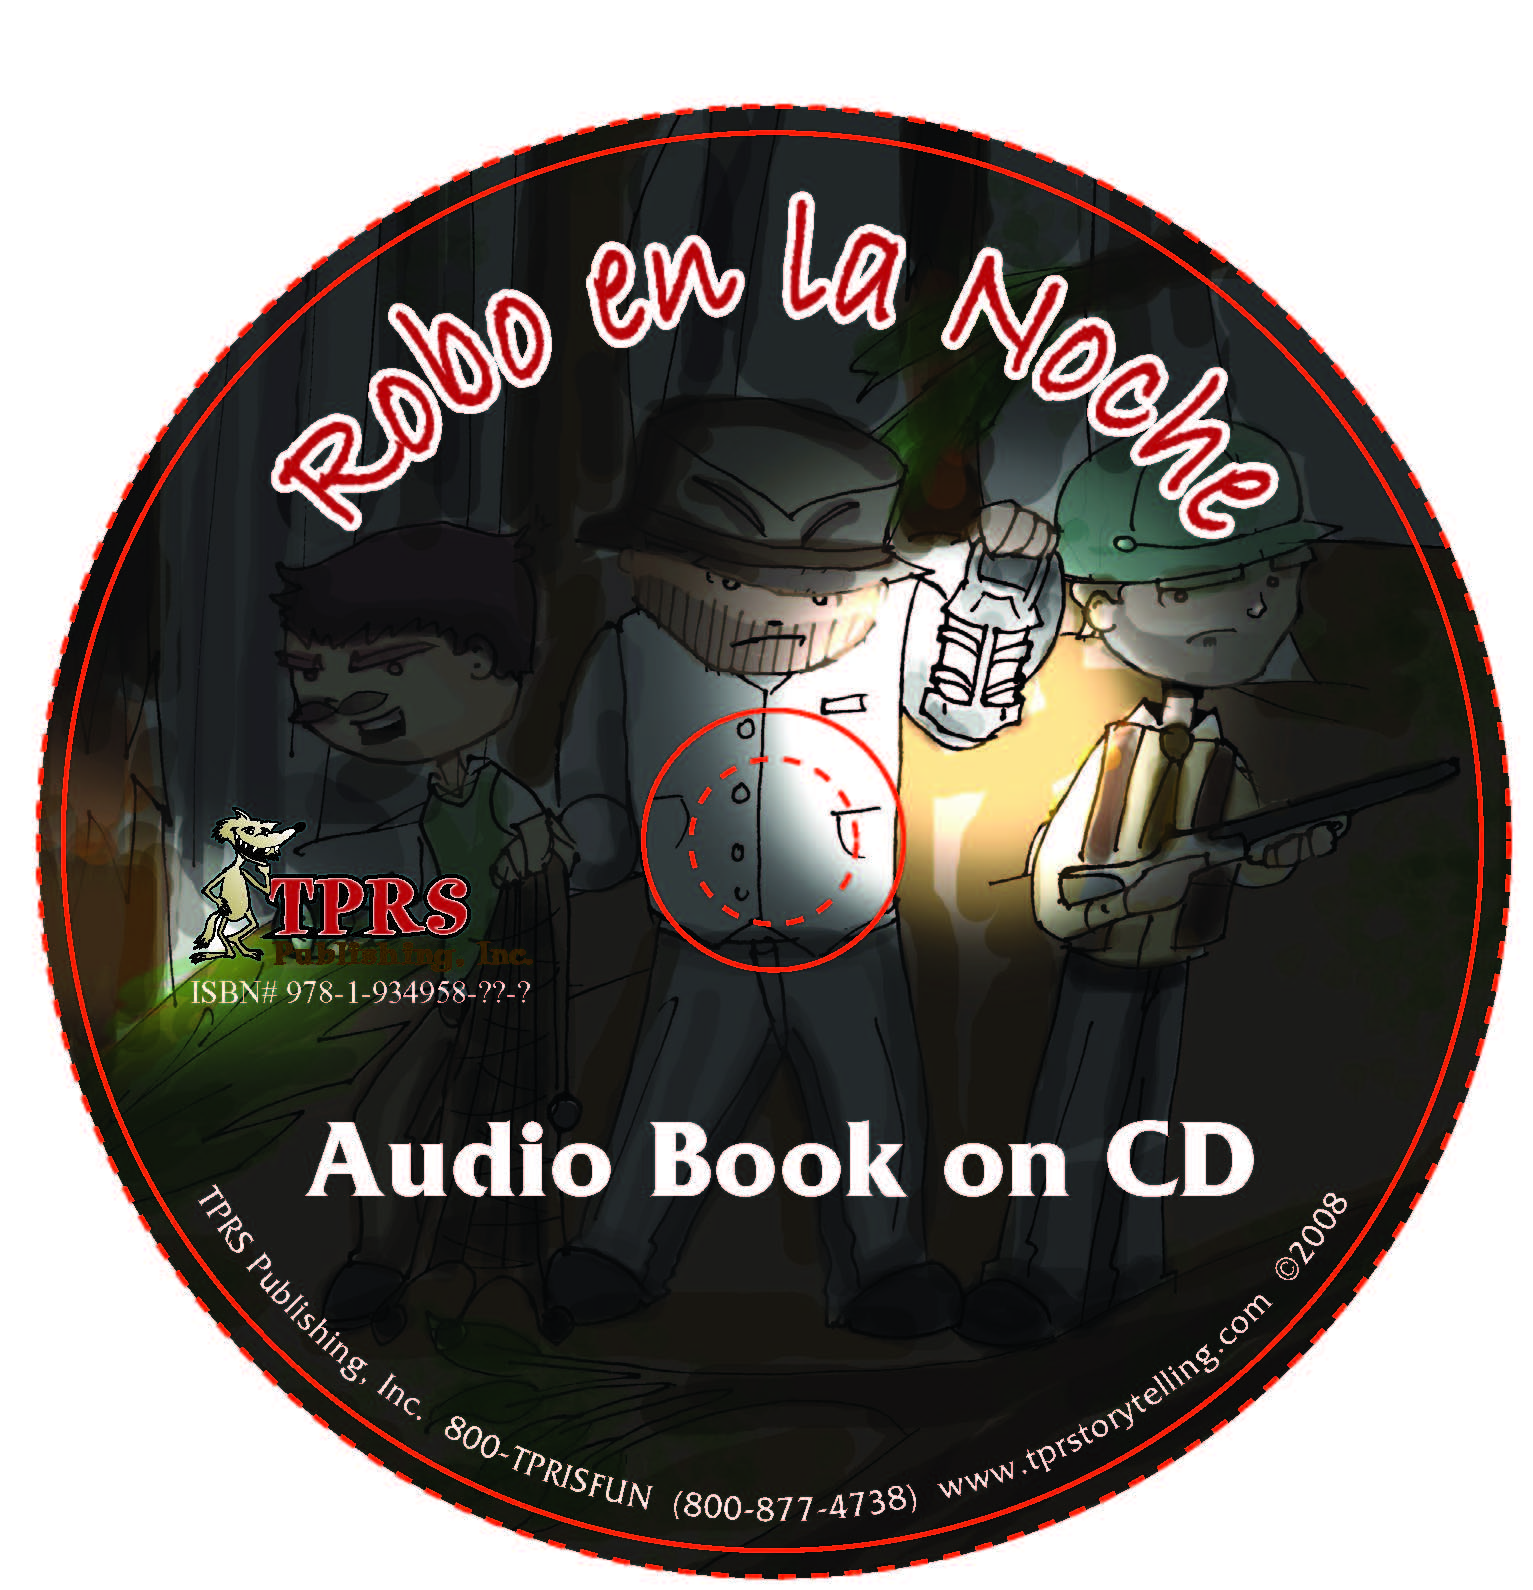 Robo en la noche – Audio Book on CD – Present Tense